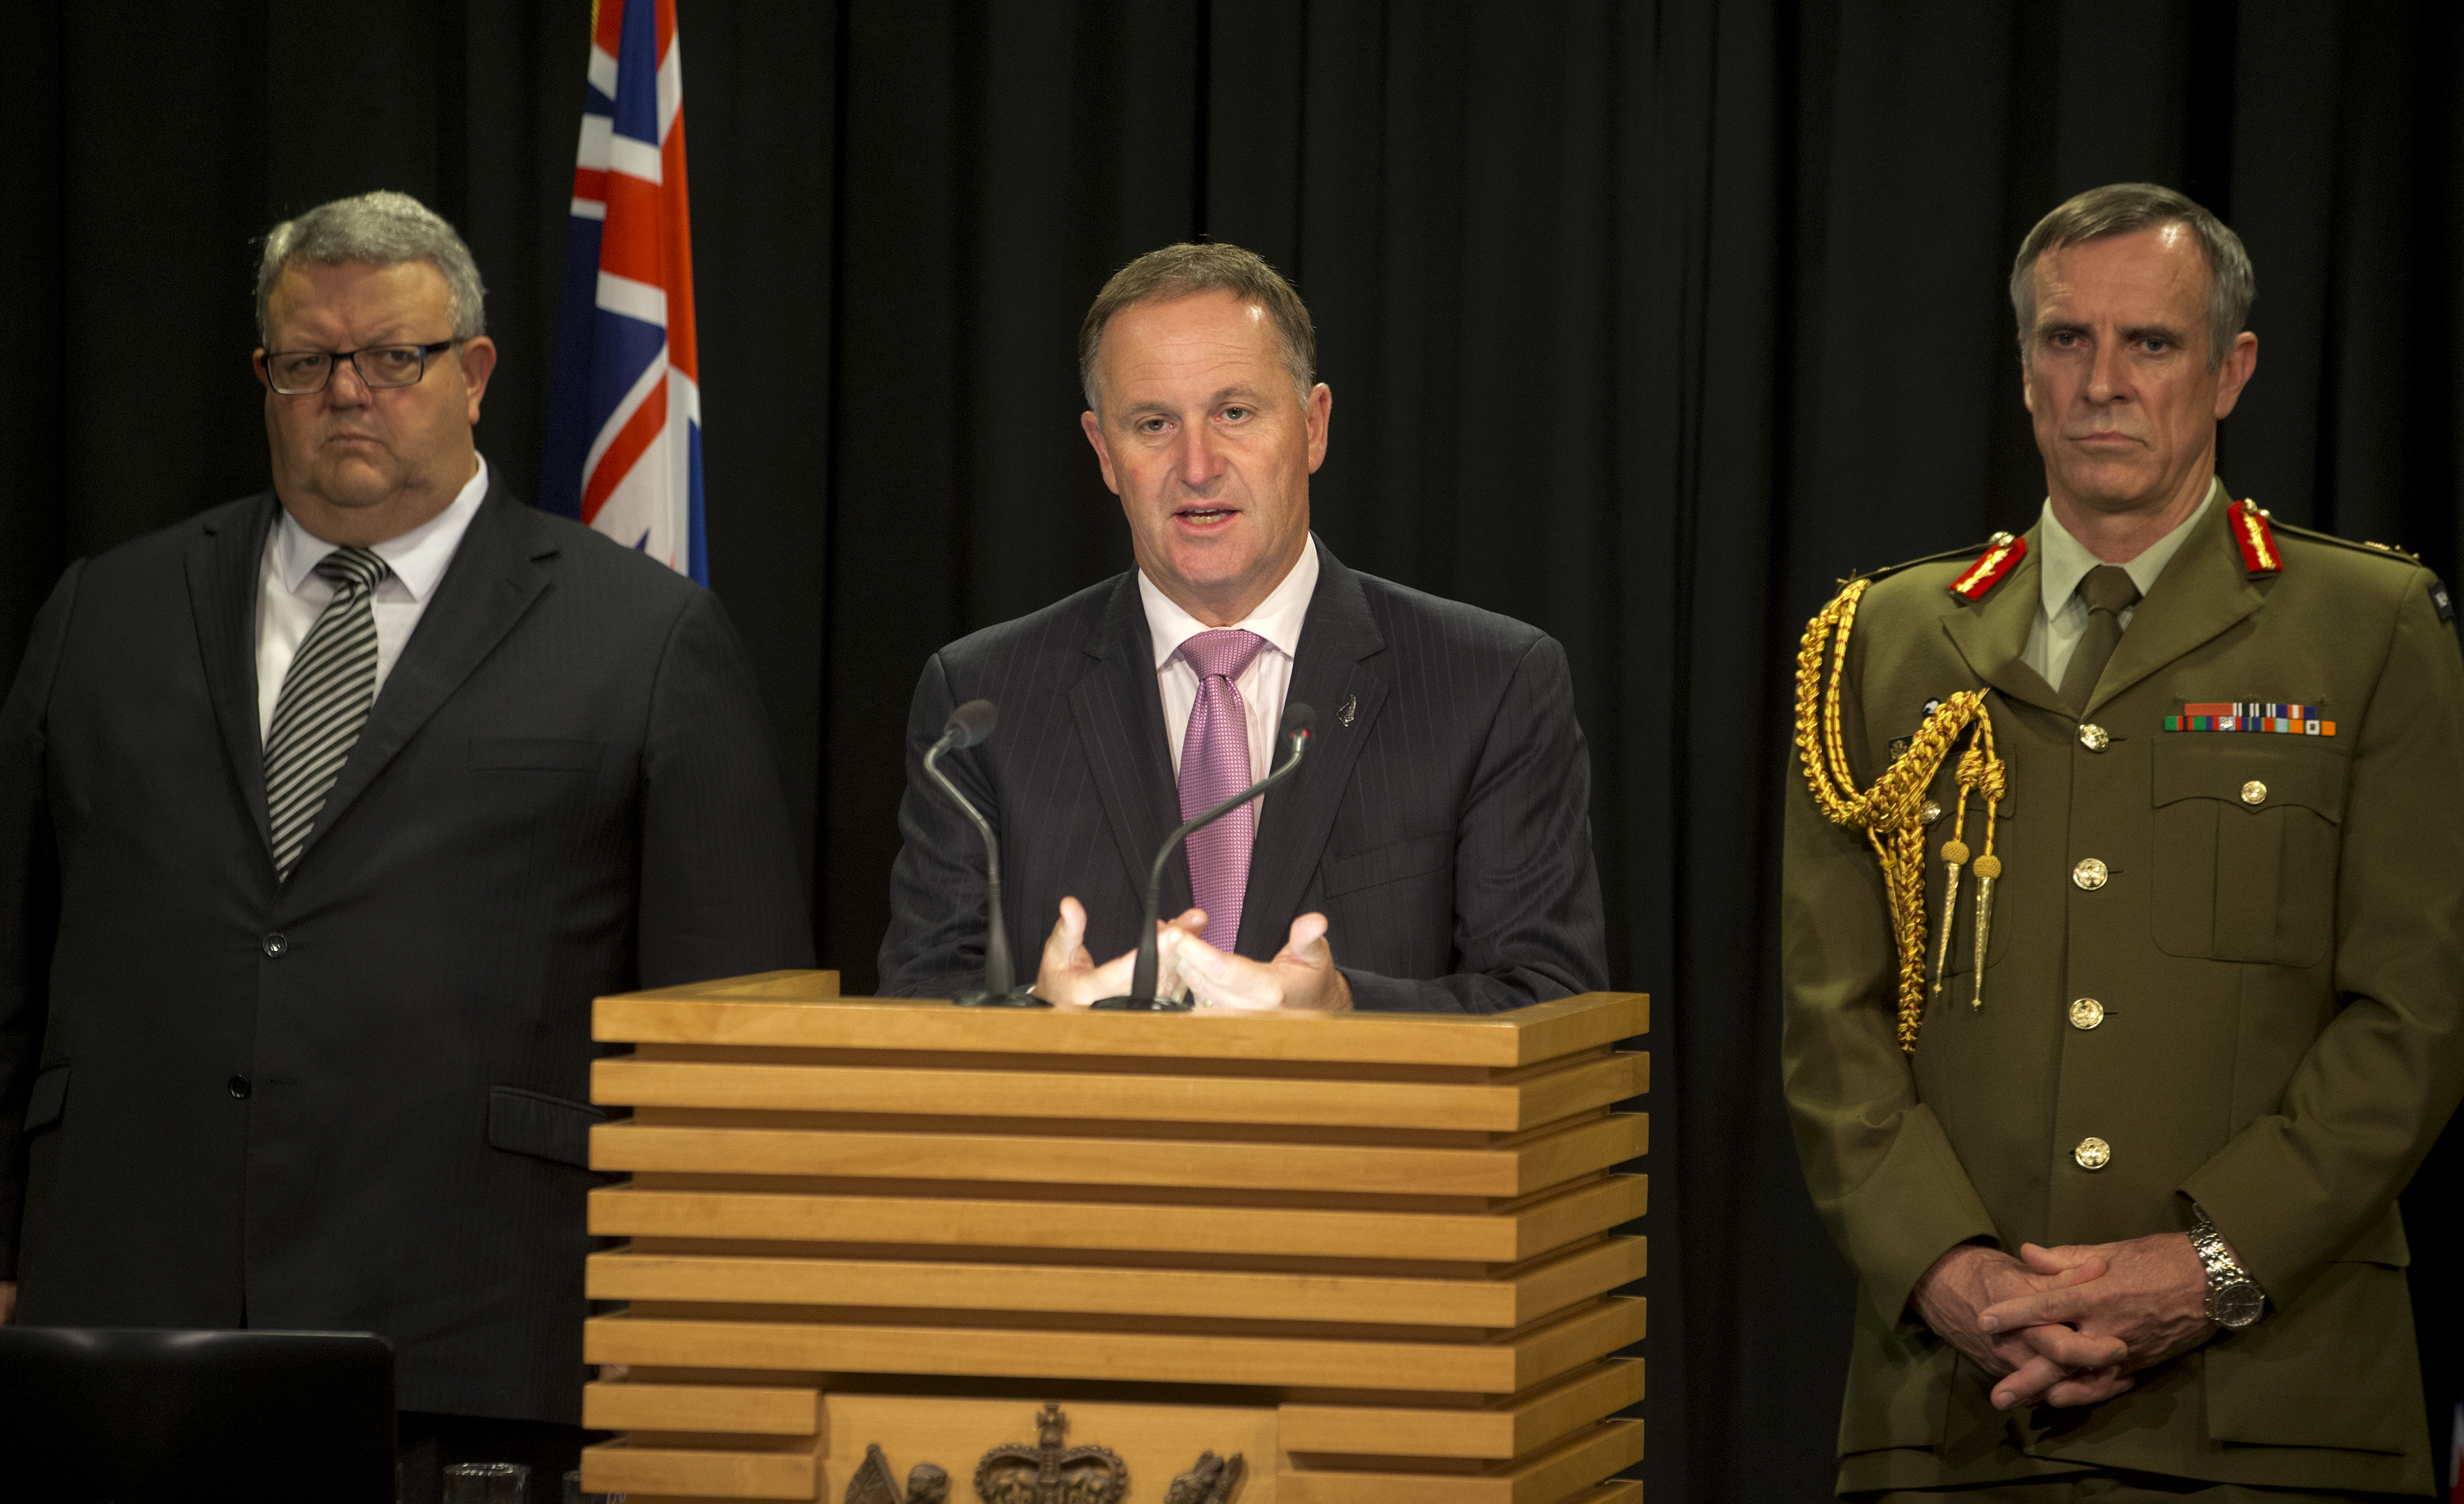 Get some guts and join the right side' - John Key lashes out